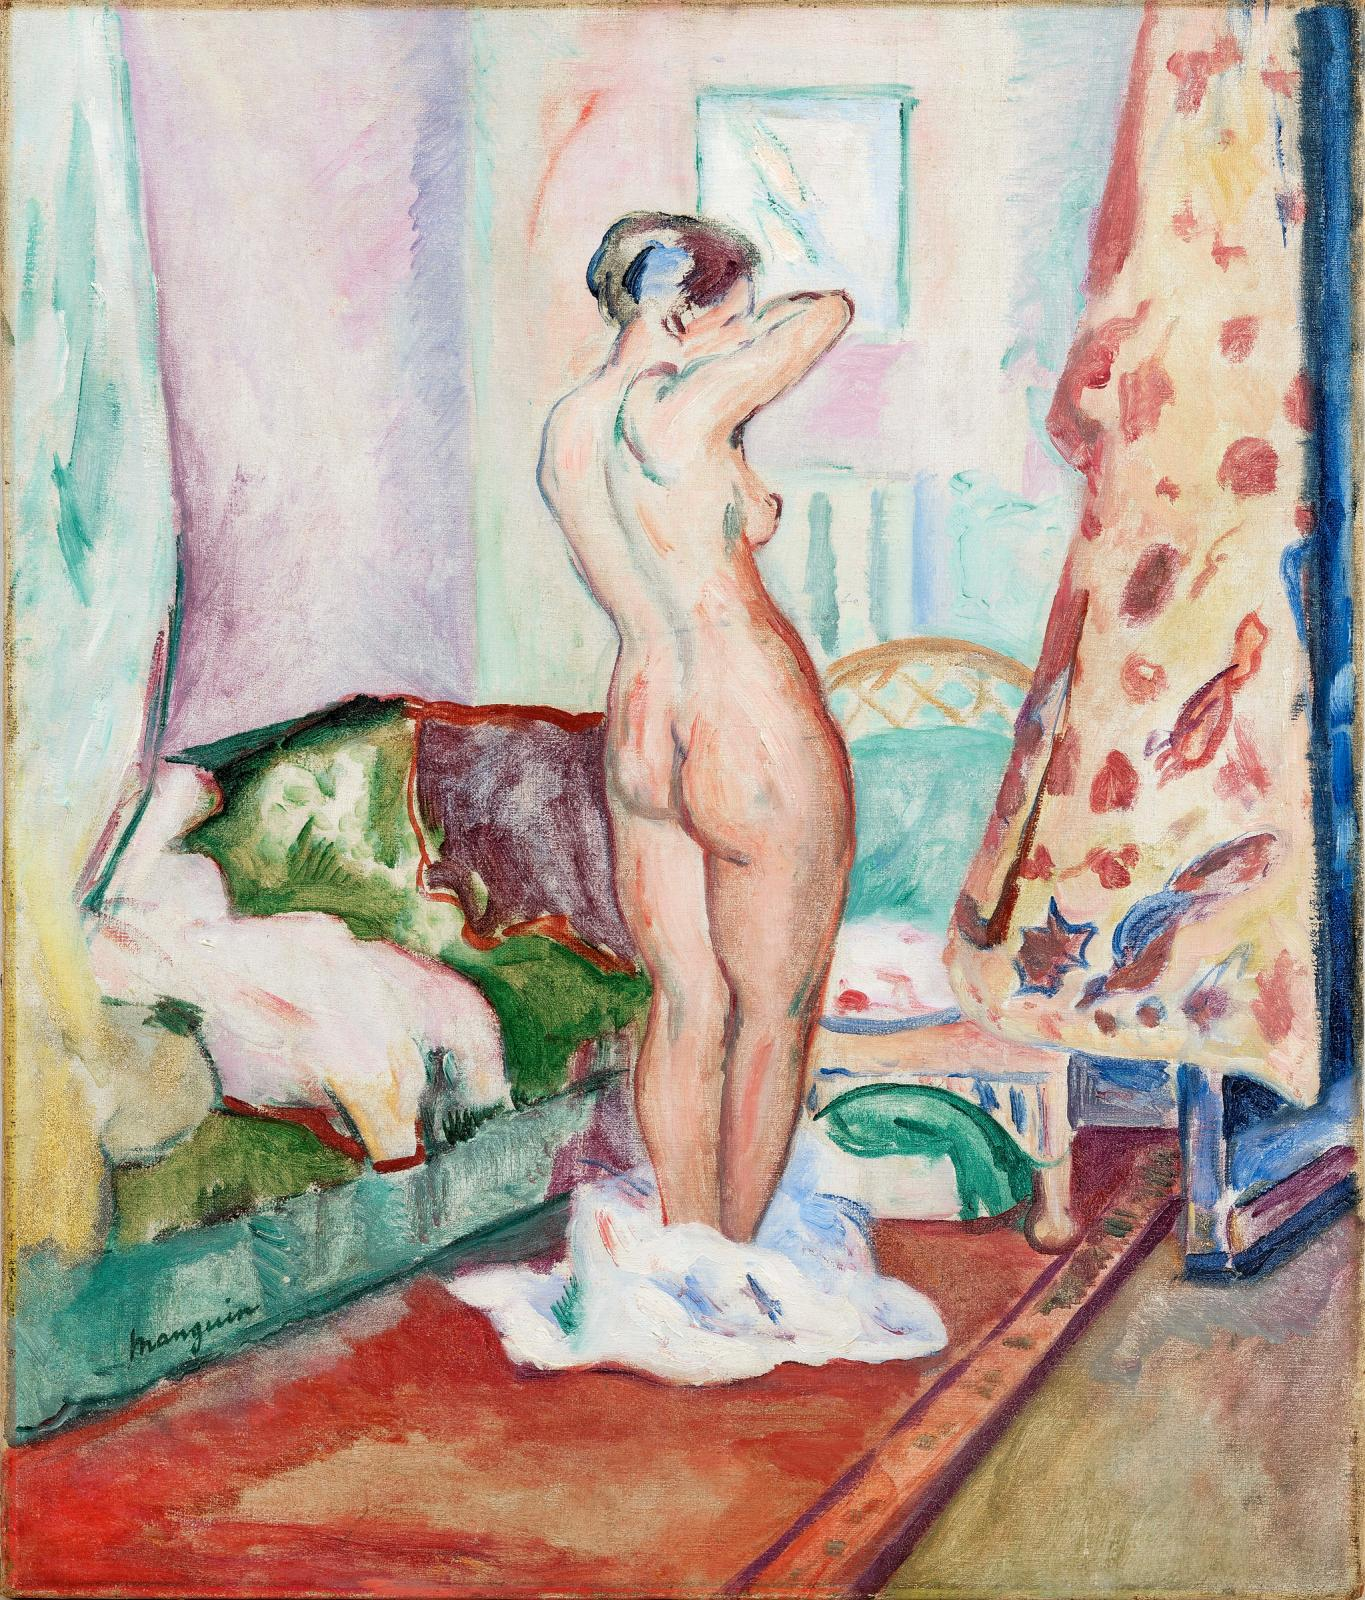 "Henri Manguin (1874-1949),  ""Intérieur, Nu debout"", 1916, oil on canvas, 75 x 60 cm. The work will be presented at the 2019 BRAFA."